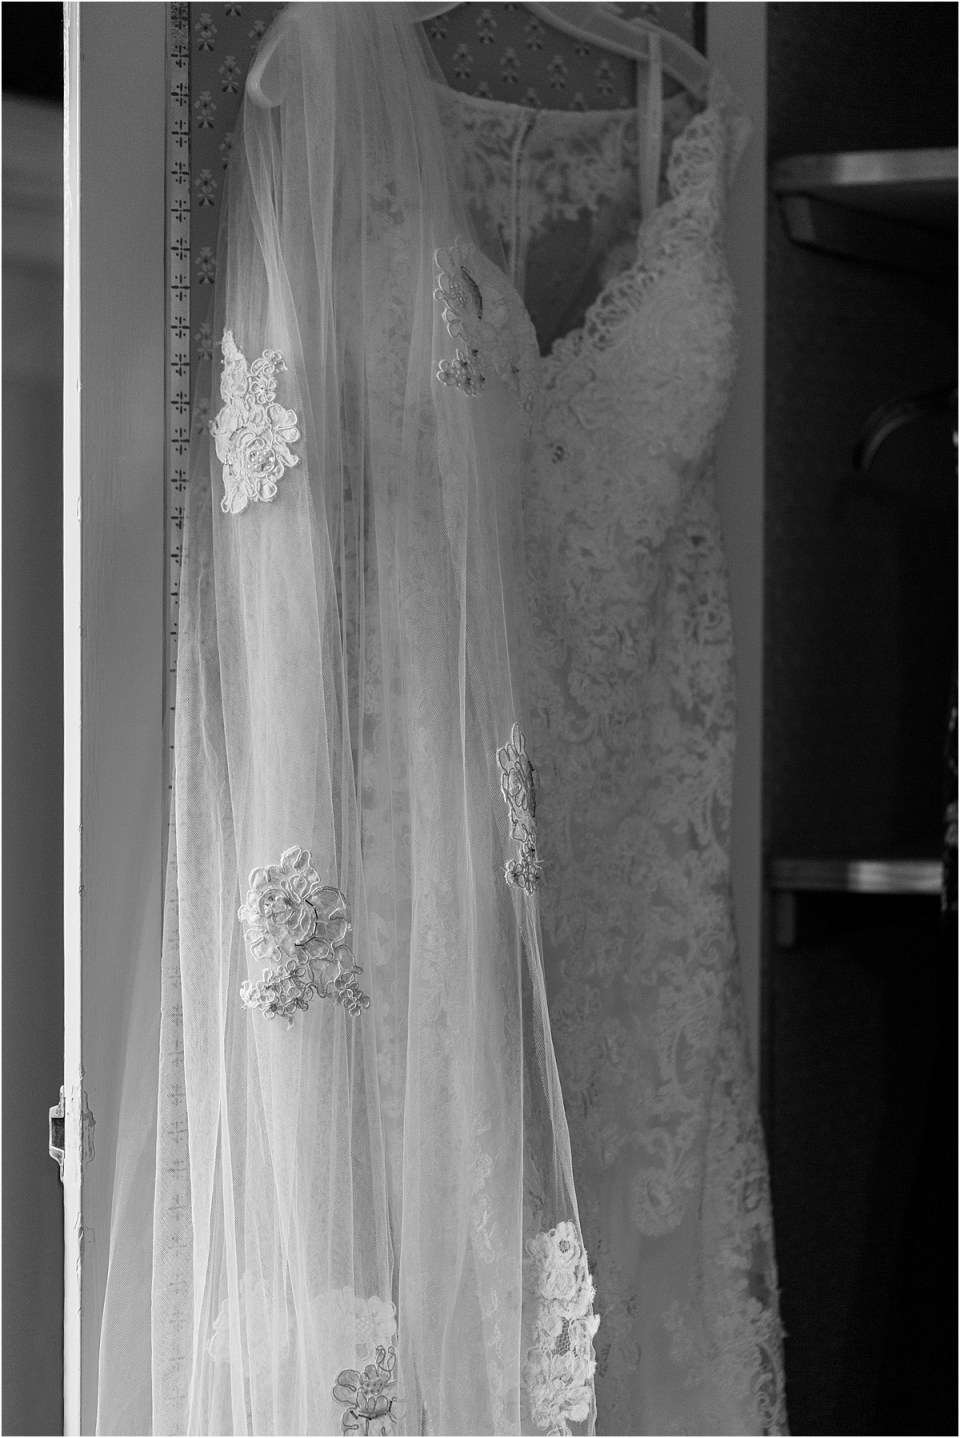 Wedding Dress with Mother's veil.